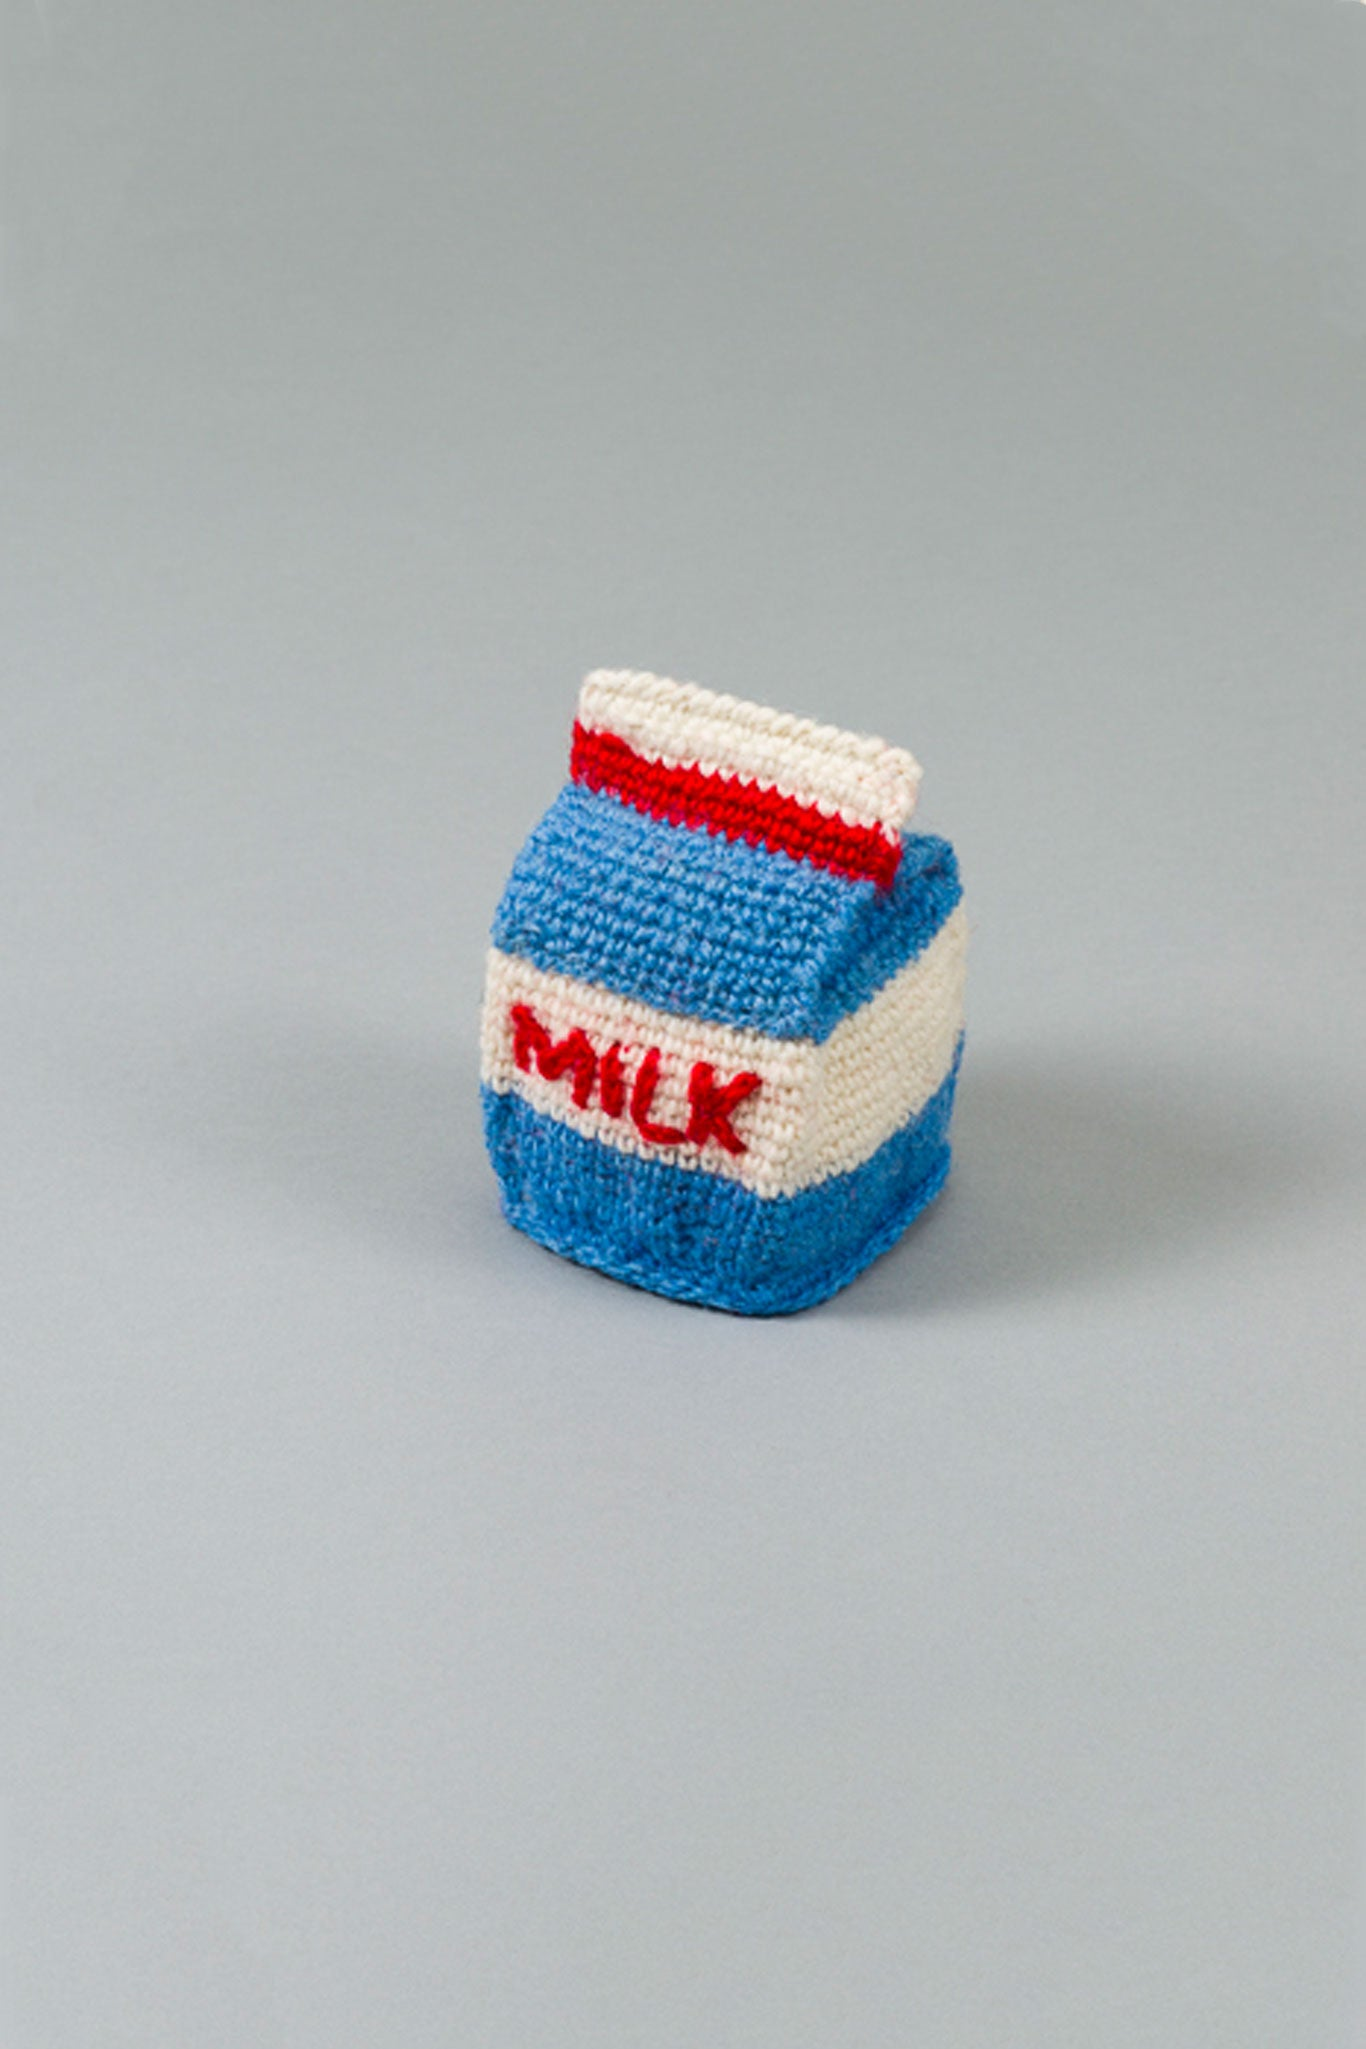 Ware of the Dog Hand Knit Milk